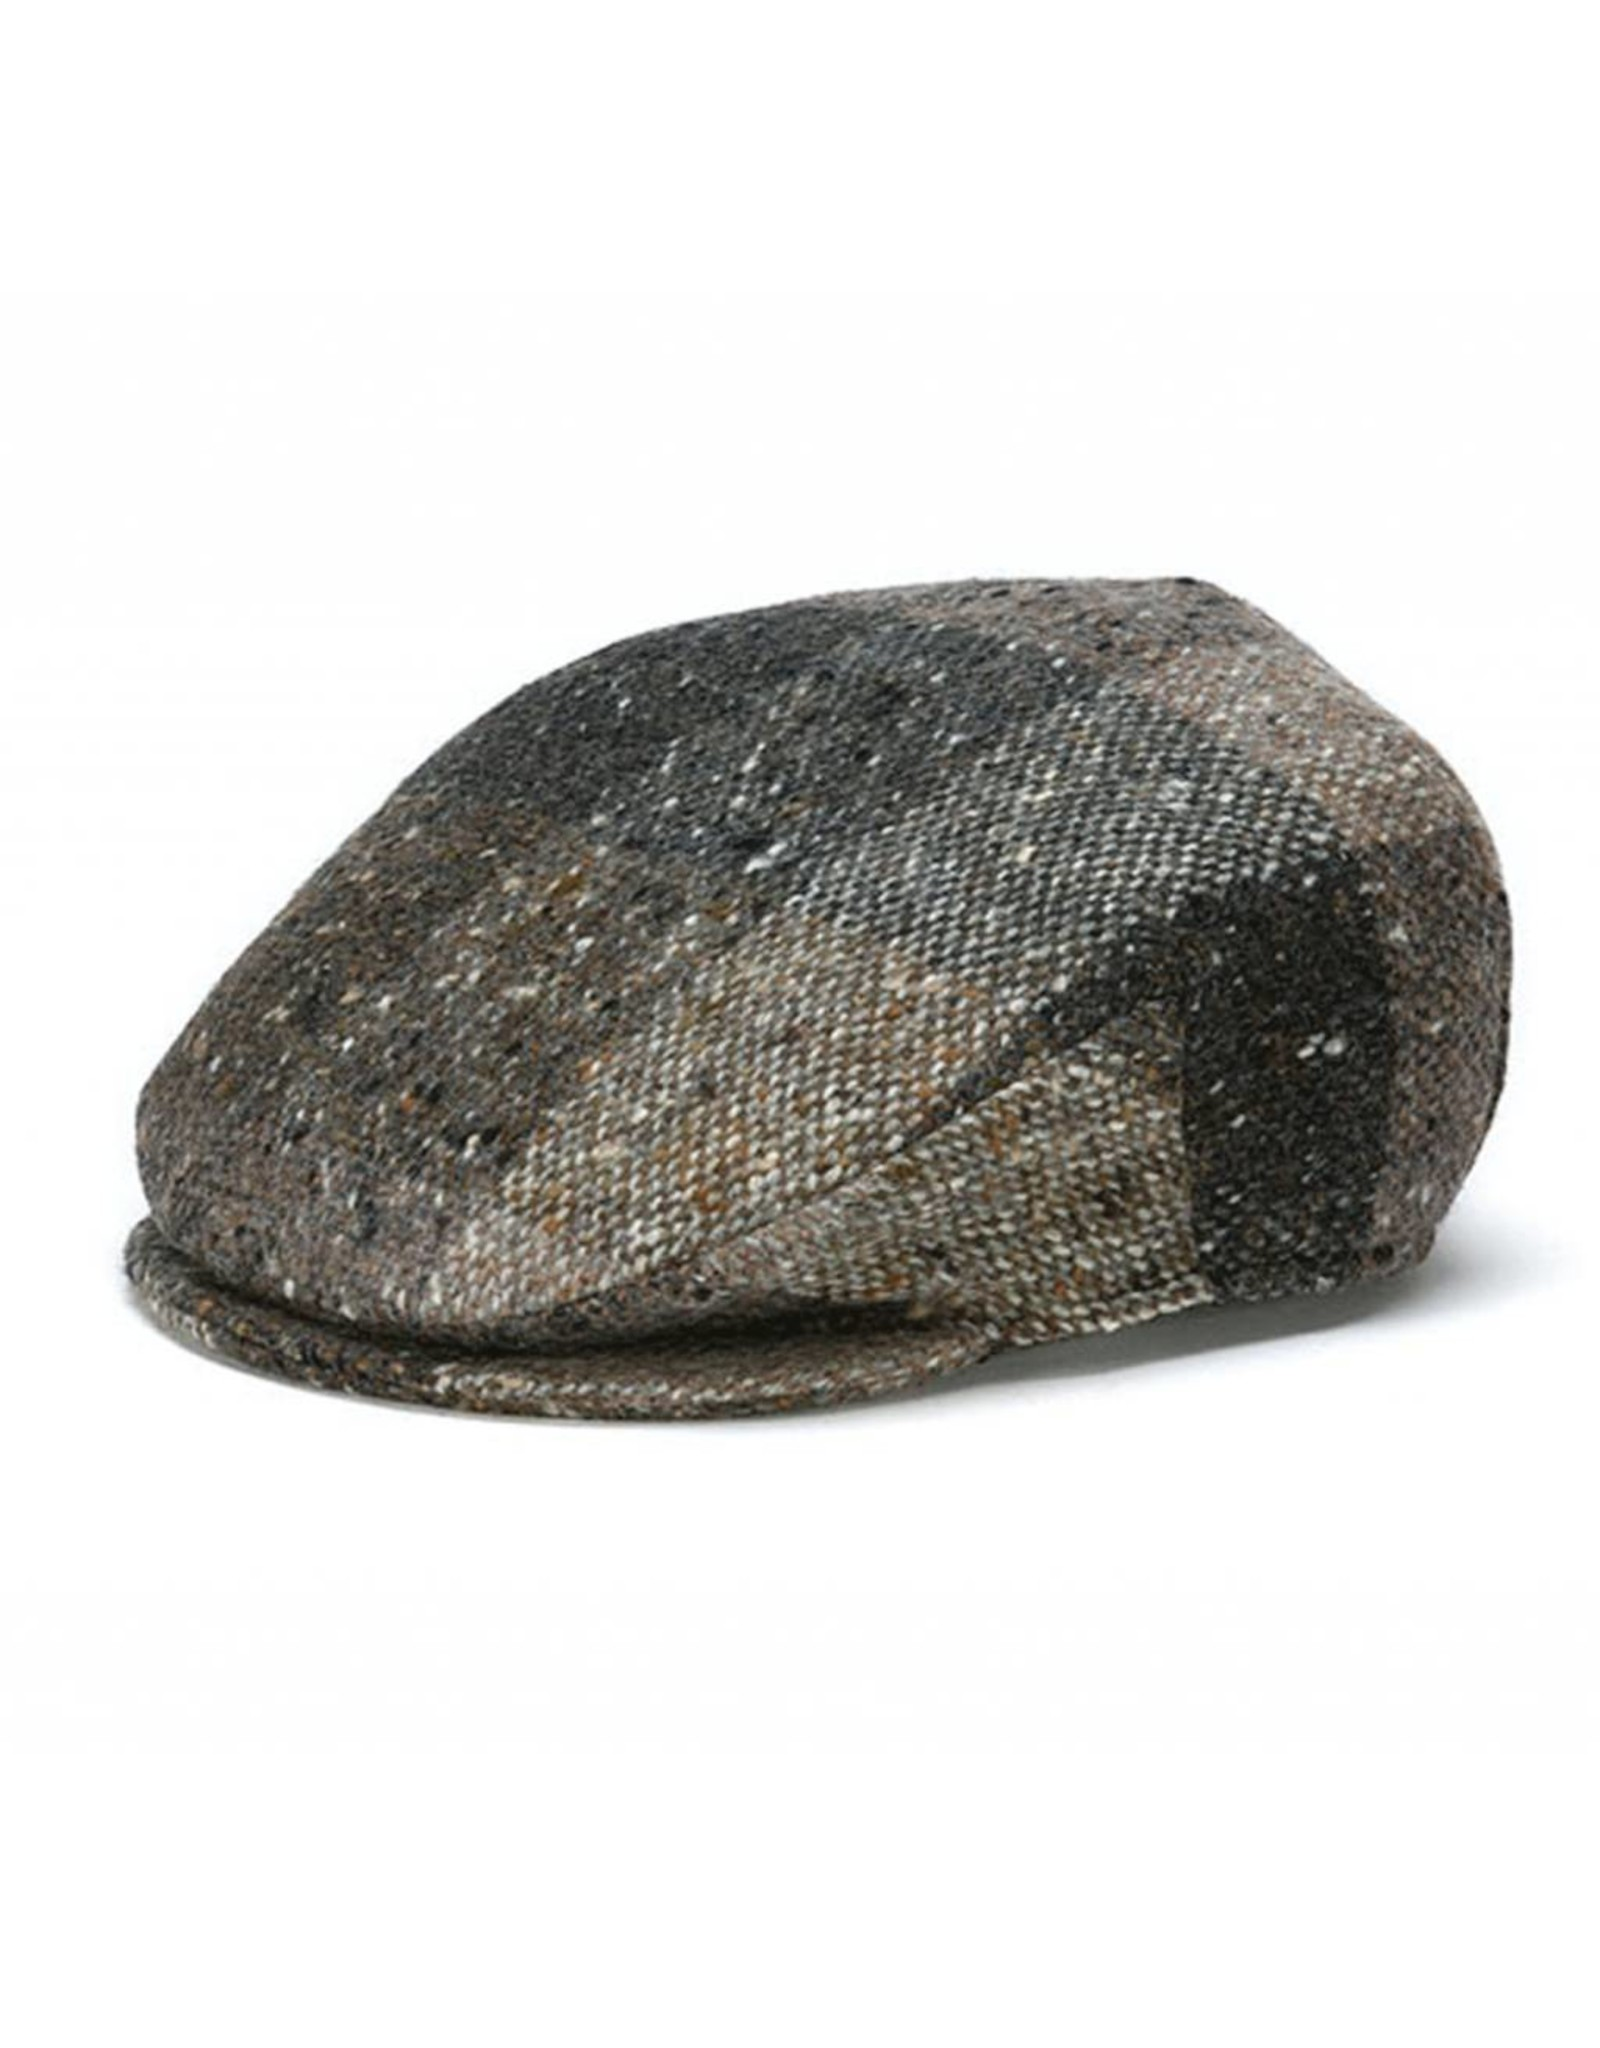 Hanna Hats Tweed Vintage Flat Cap by Hanna Hats *Other Colors""